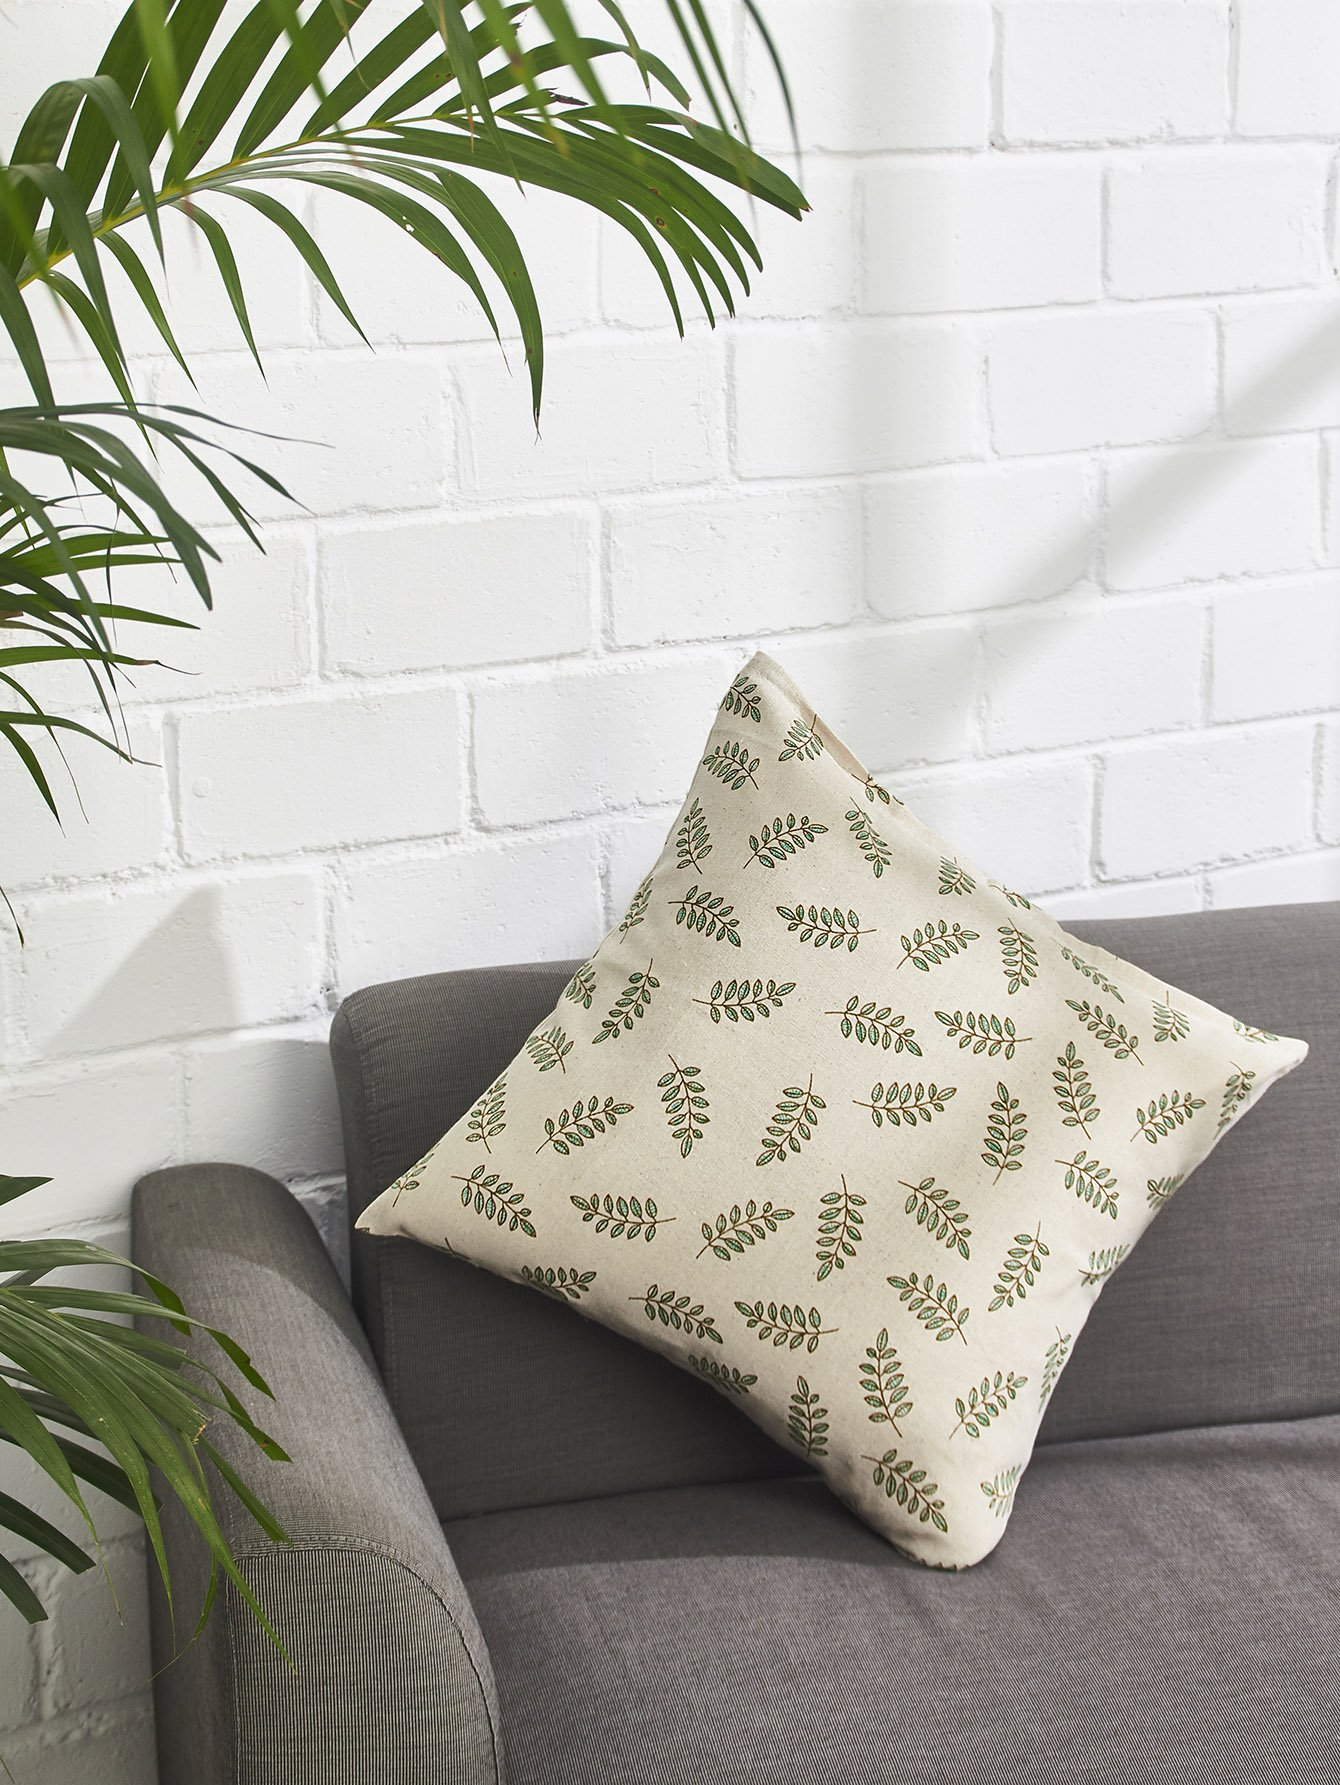 Allover Leaf Print Pillowcase Cover allover grid print pillowcase cover